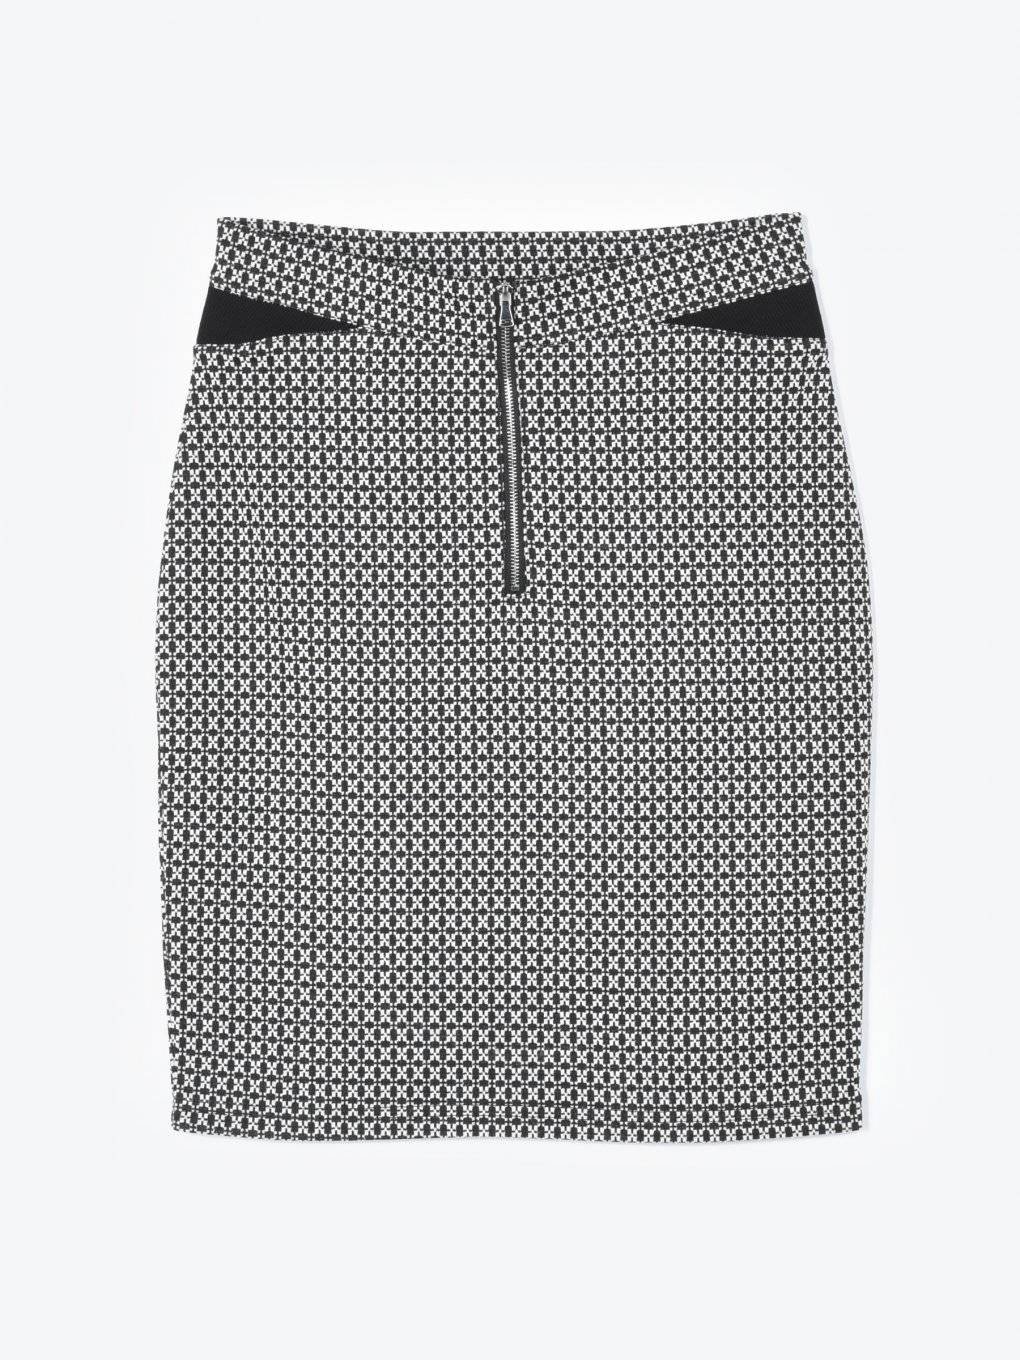 Jacquard bodycon skirt with zipper